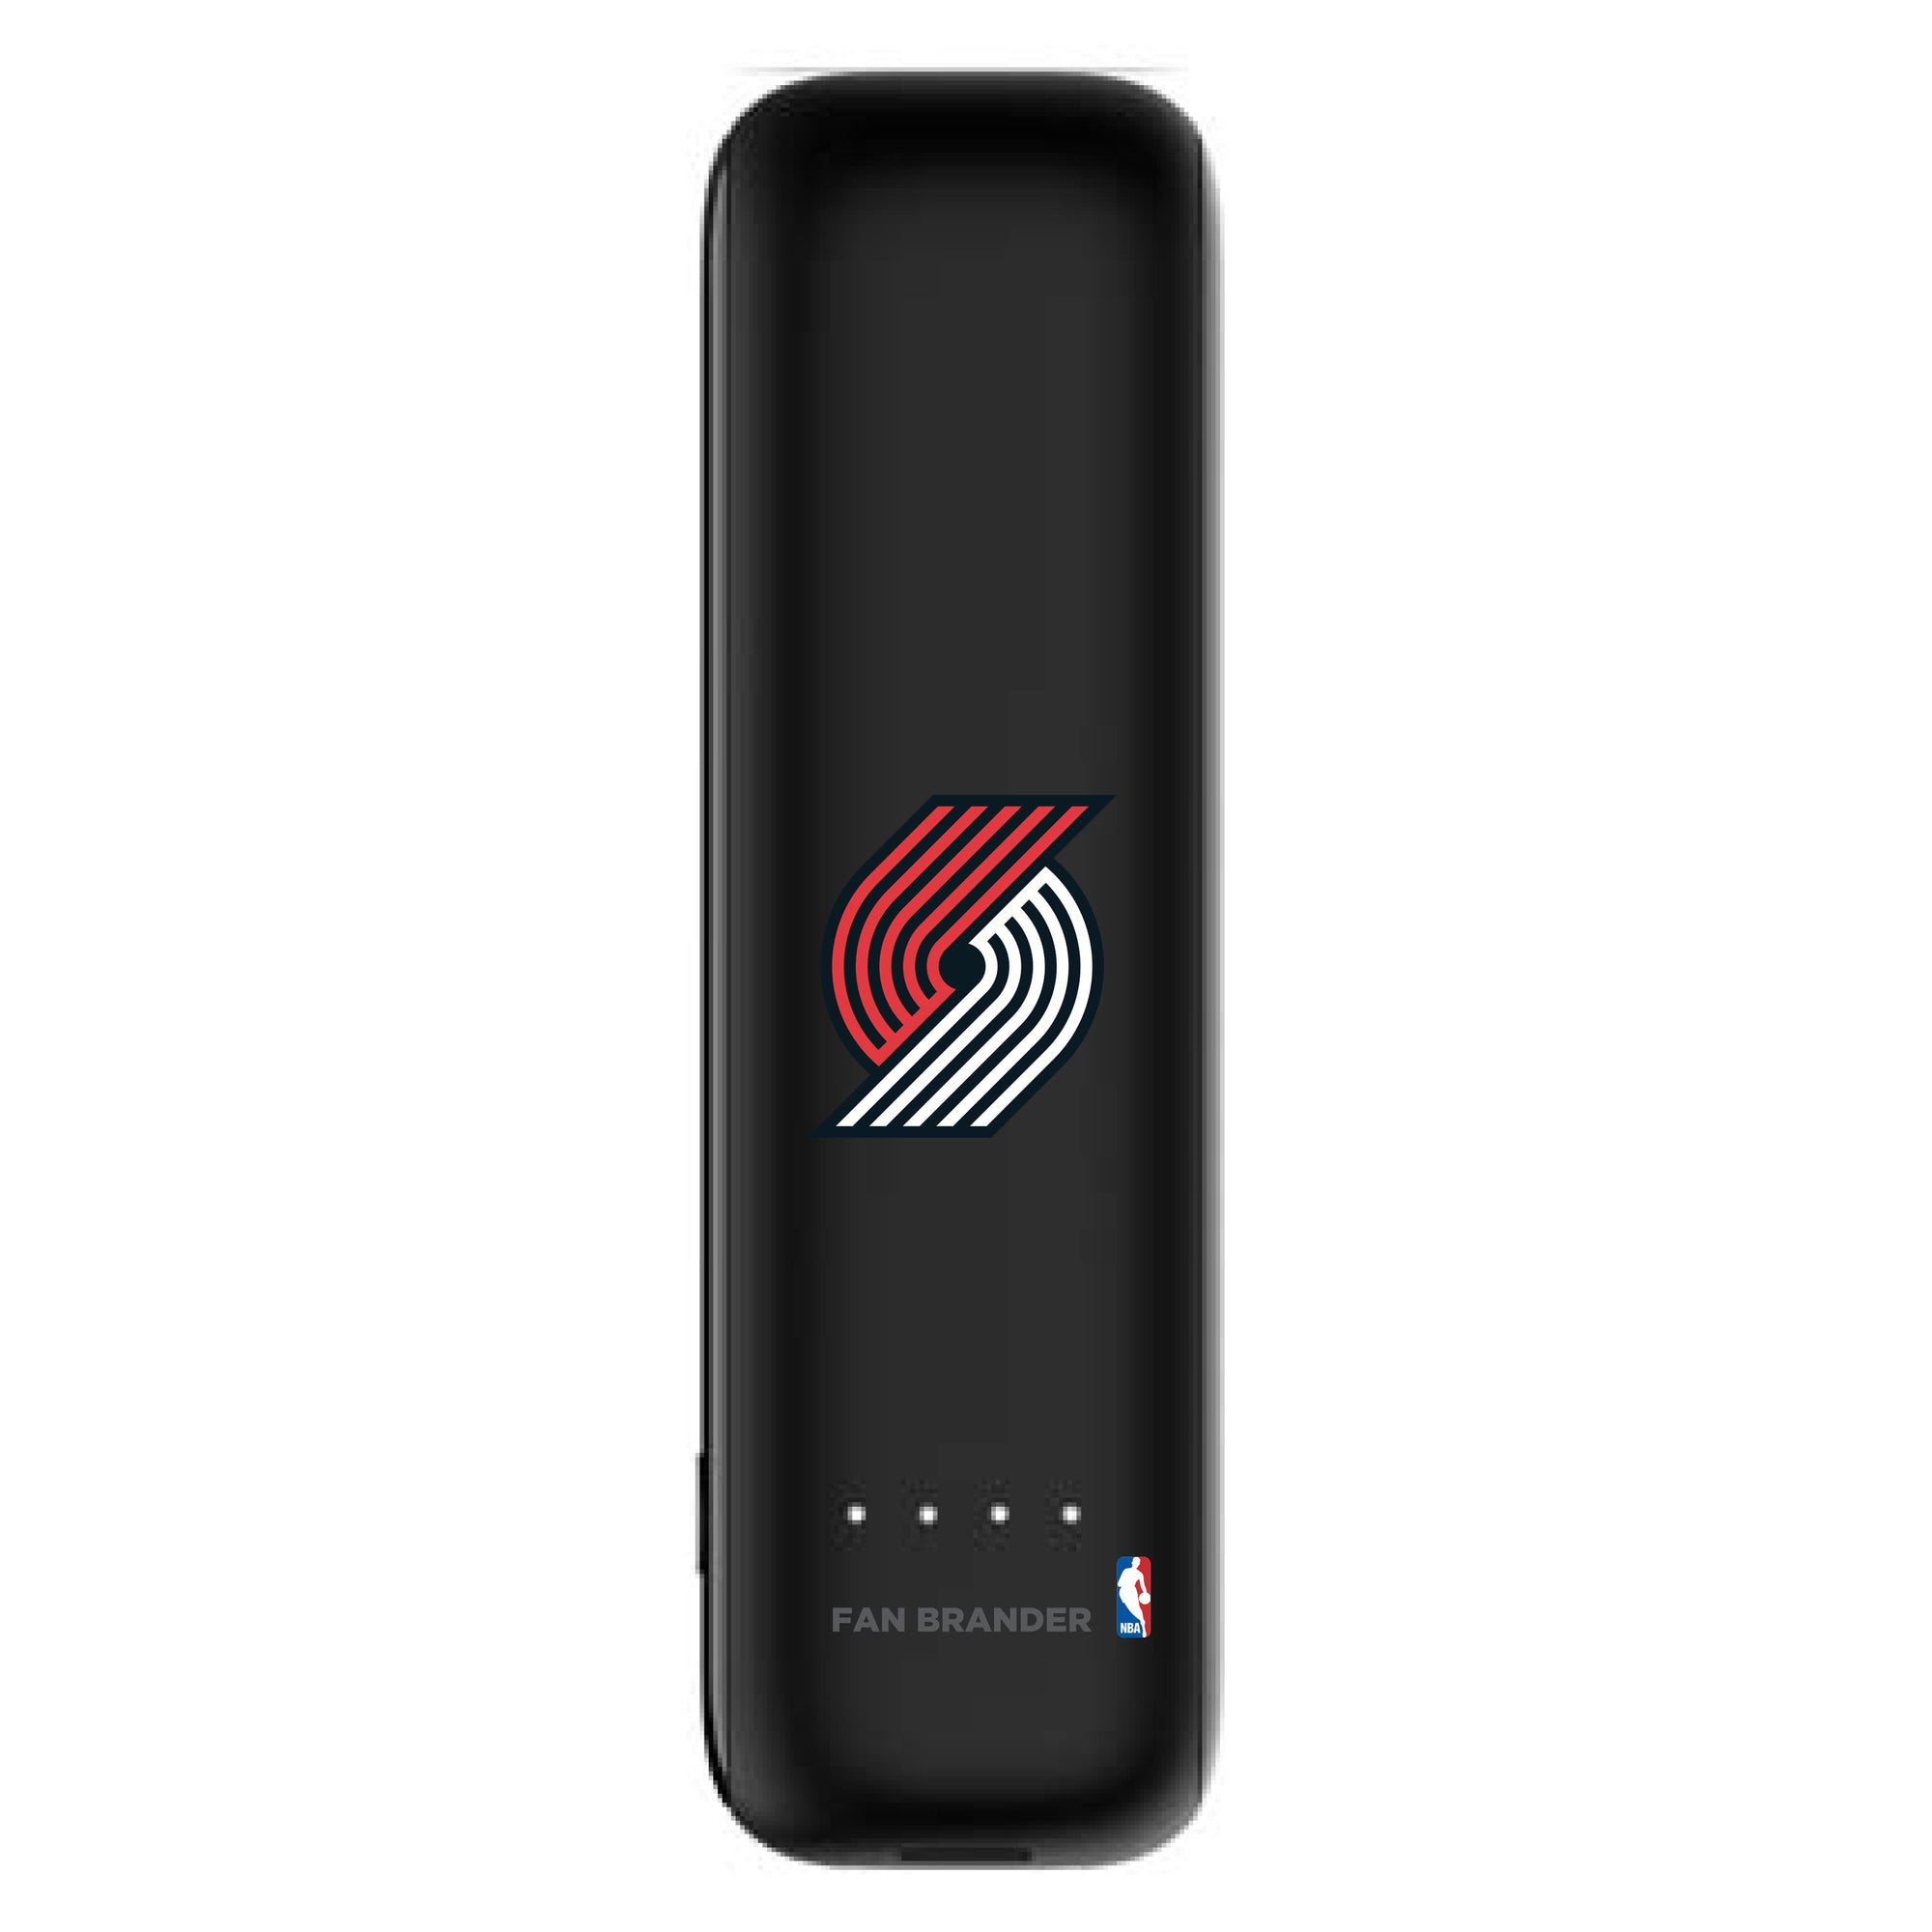 Portland Trailblazers Mophie Power Boost Mini 2,600mAH